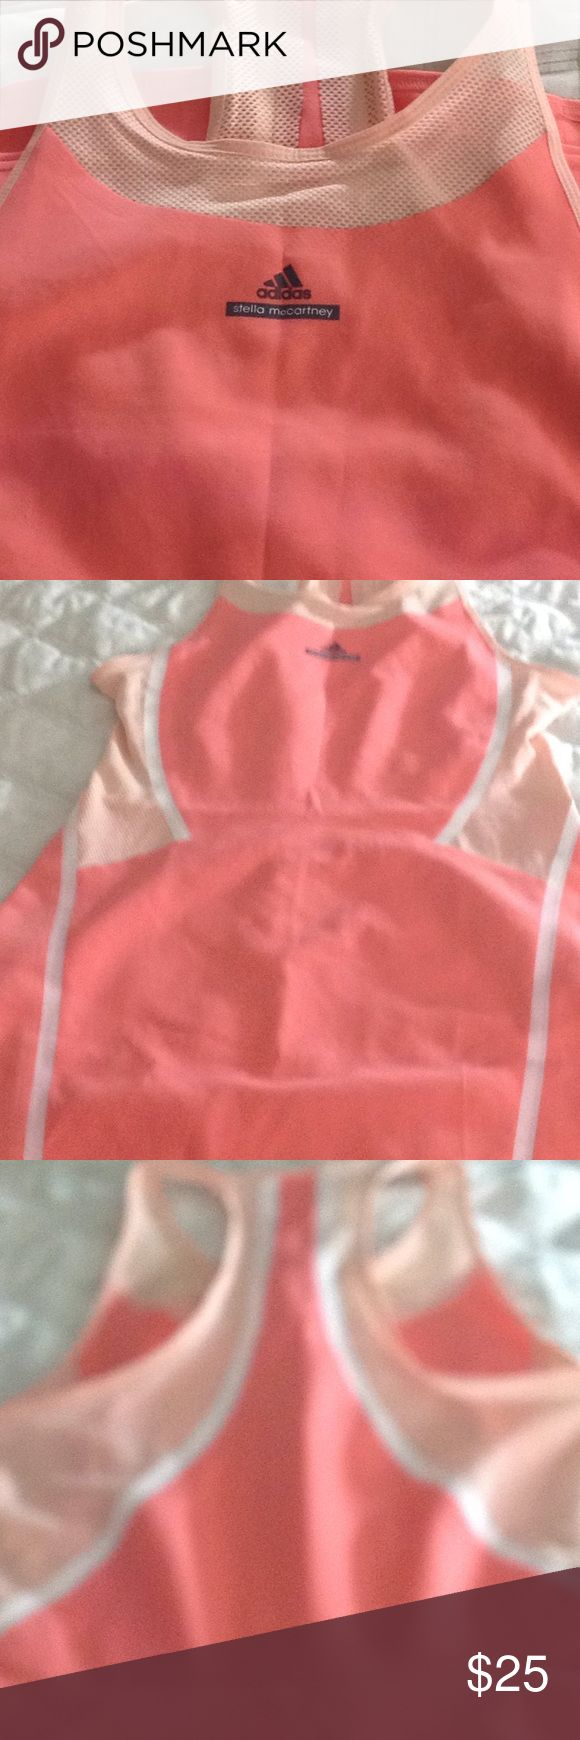 Stella McCartney Adidas Barricade Dress Coral tennis dress with out the shorts Adidas by Stella McCartney Dresses